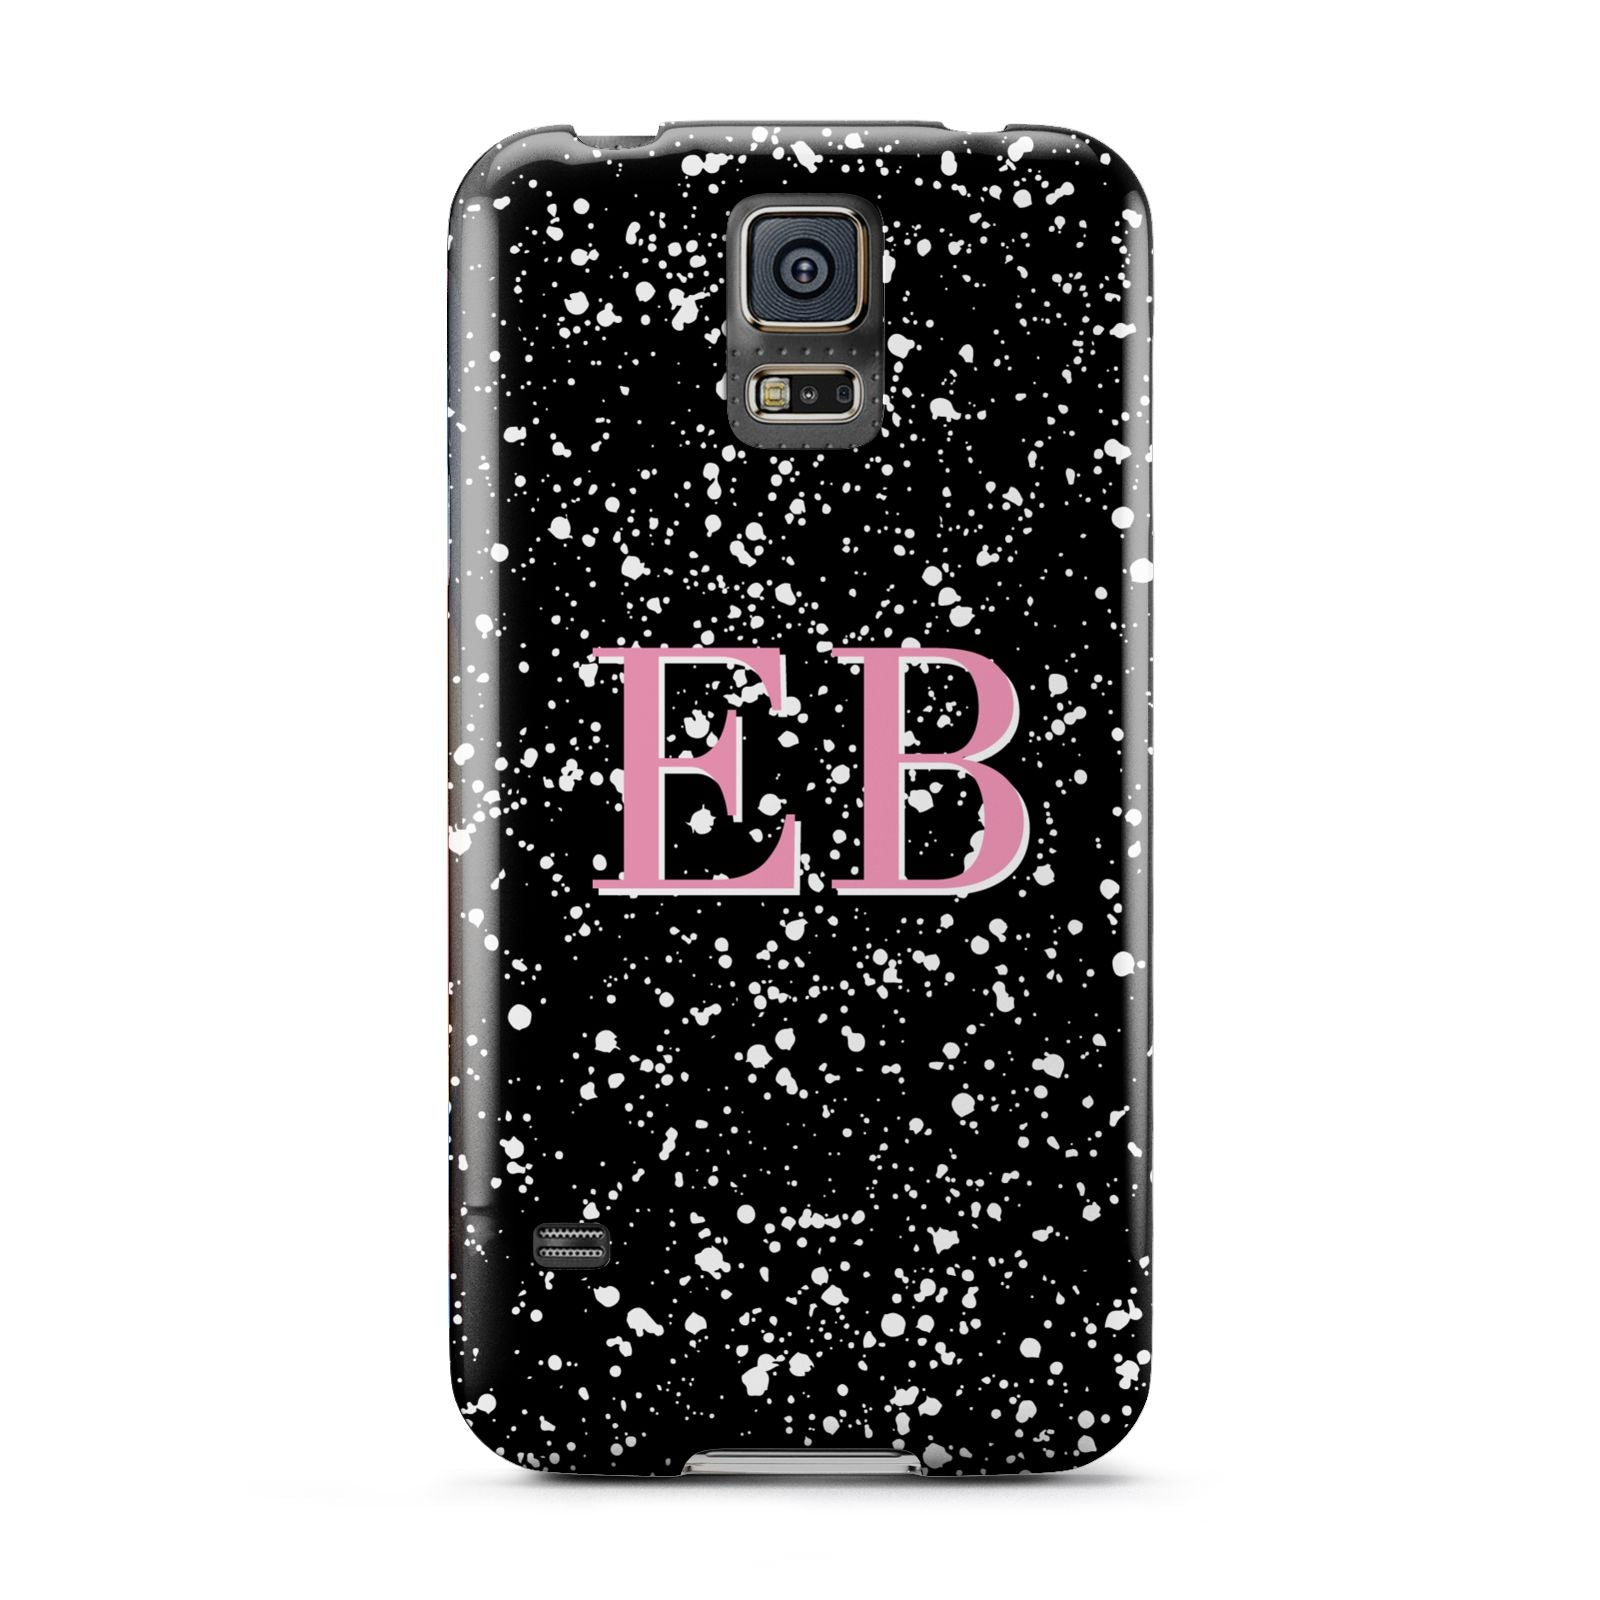 Personalised Black Ink Splat Initials Samsung Galaxy S5 Case